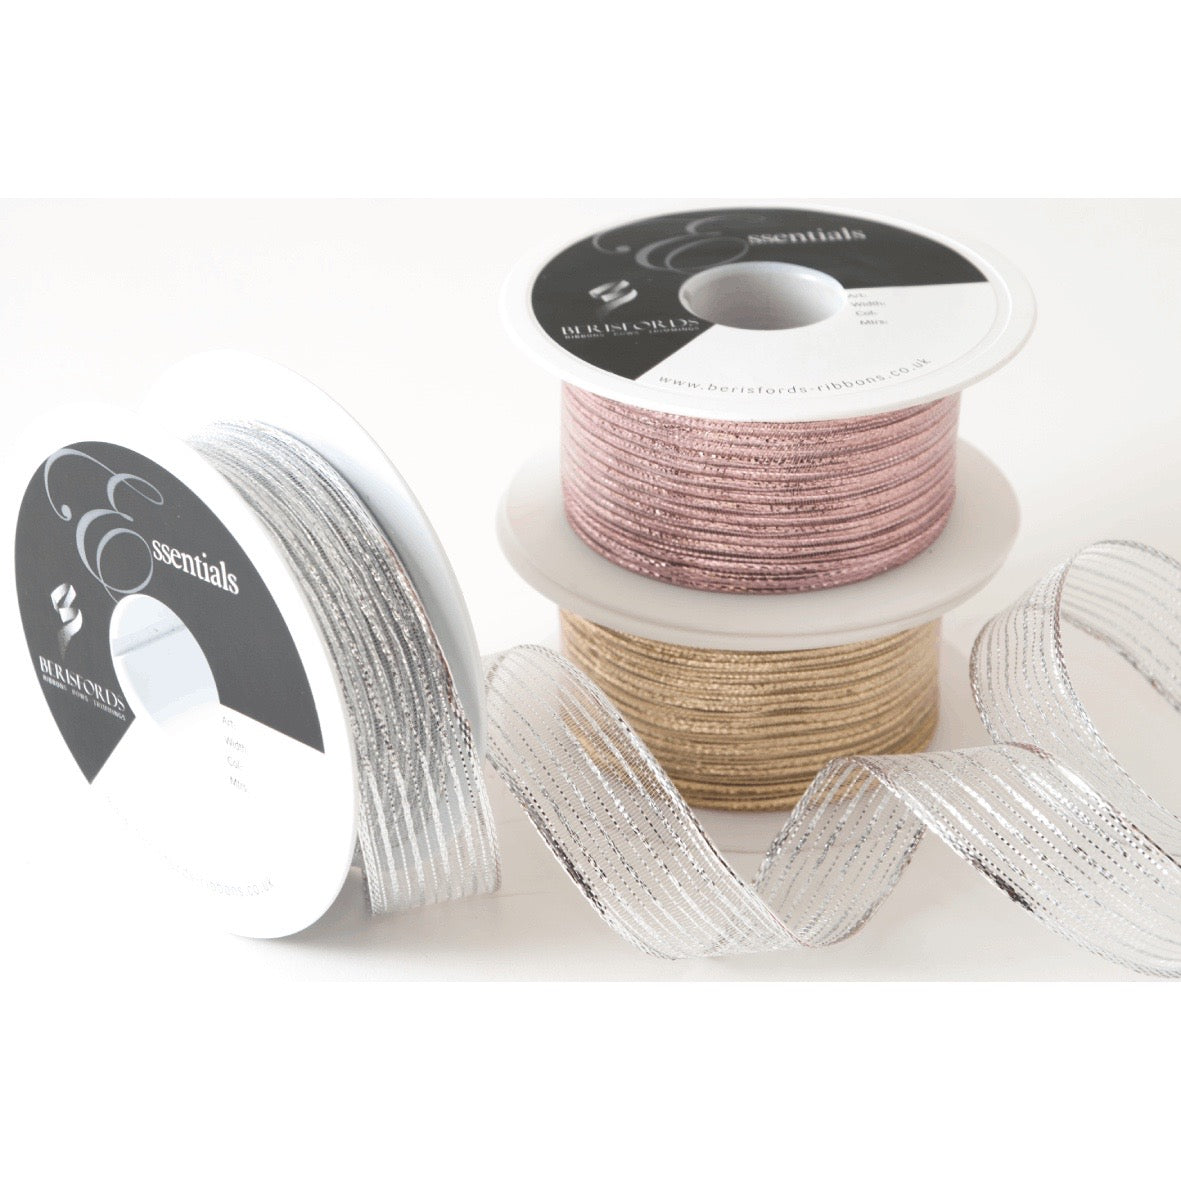 Berisfords Tinsel Mesh Ribbon, Gold, Rose Gold or Silver, 2 widths available.  Sold per metre